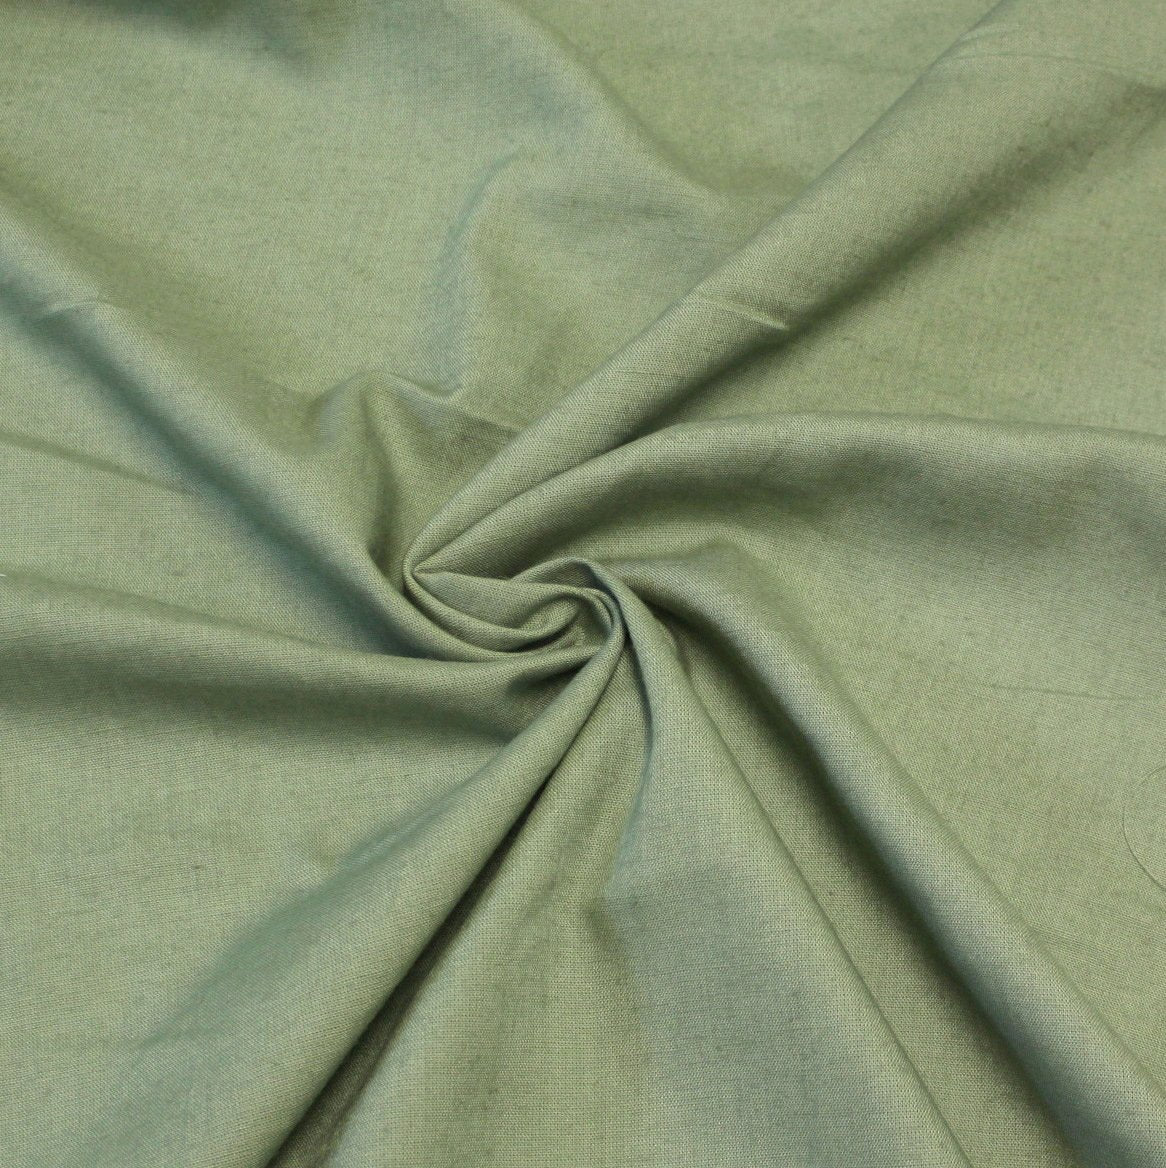 Sage Green Medium Weight Rayon Linen - Raspberry Creek Fabrics Knit Fabric